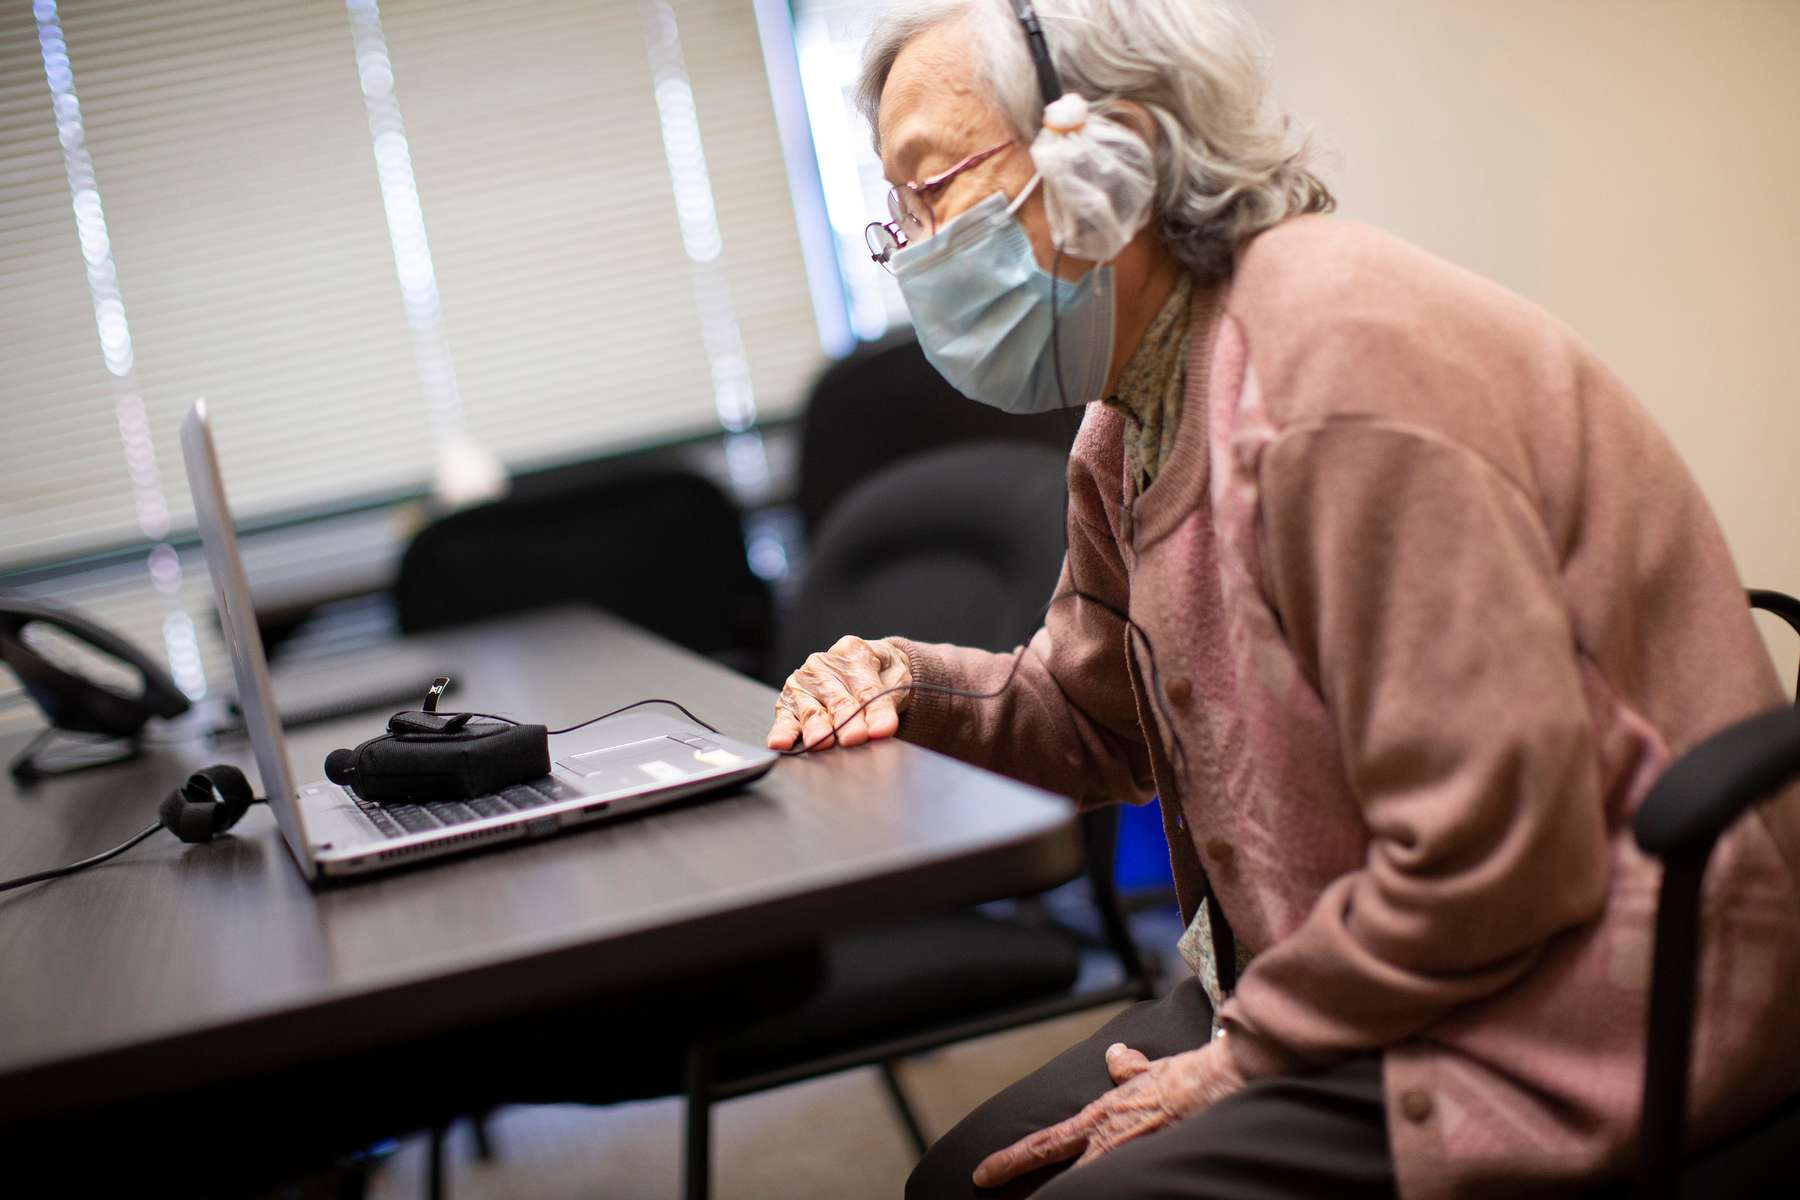 """Wong Wai, 94, a resident at the Legacy House, speaks on a ZOOM meeting with her children and grandchildren in Seattle, WA. on May 29, 2020. Originally from mainland China, Wai does not speak English. The Legacy House set up a laptop so residents could communicate with their loved ones. Says Raymond He from International Community Health Center, who runs the assisted living facility, about the family, """"They're super grateful. I know they're all very concerned, especially with the news that's been going on right now. It's just a lot of scary news. So just seeing that their parents are here, healthy, safe. It's just really enlightening for them."""""""